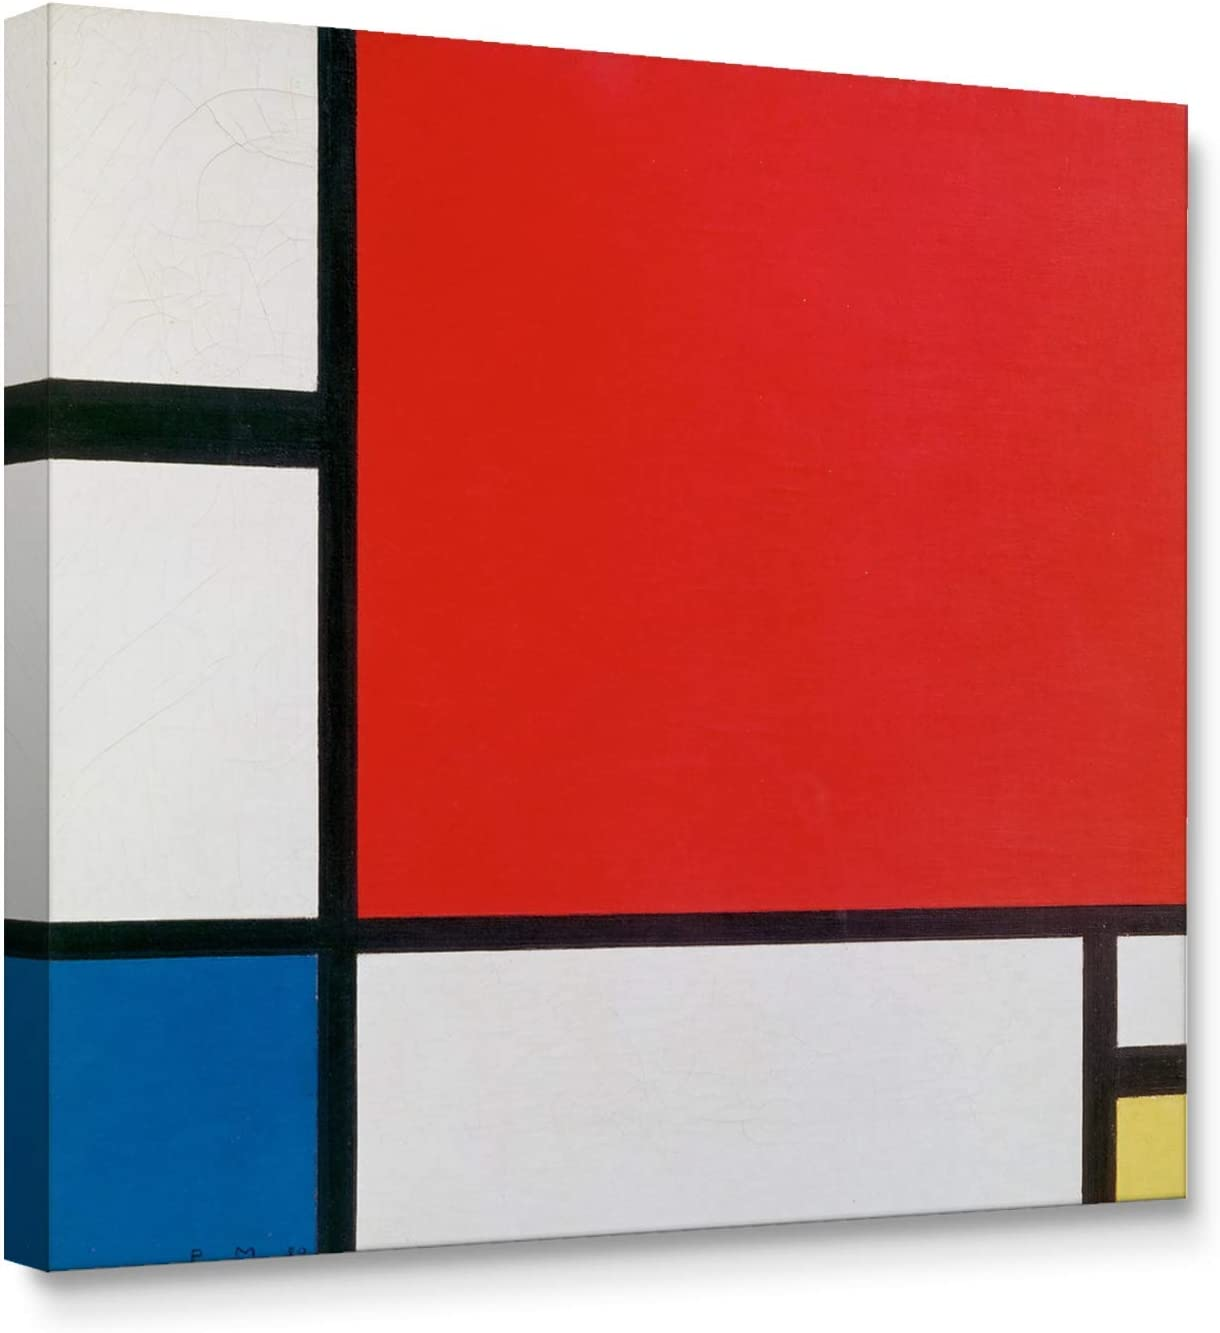 Niwo ART - Composition with Red Blue and Yellow, World's Most Famous Paintings Series, Canvas Wall Art Home Decor, Gallery Wrapped, Stretched, Framed Ready to Hang